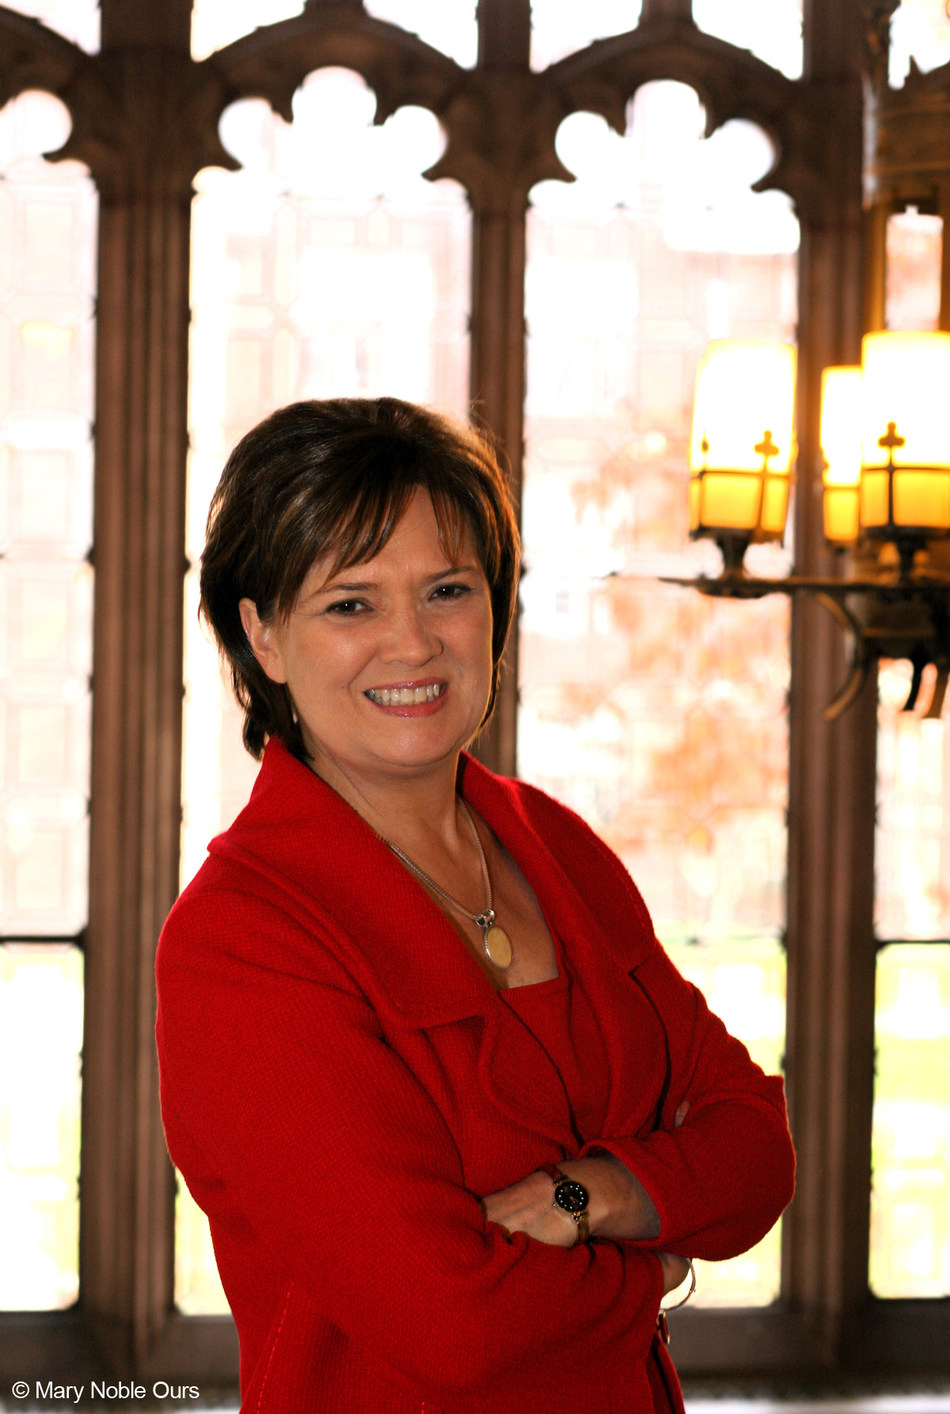 Dr. Lynn Pasquerella, President of the Association of American Colleges & Universities, is named to Newman's Own Advisory Board.